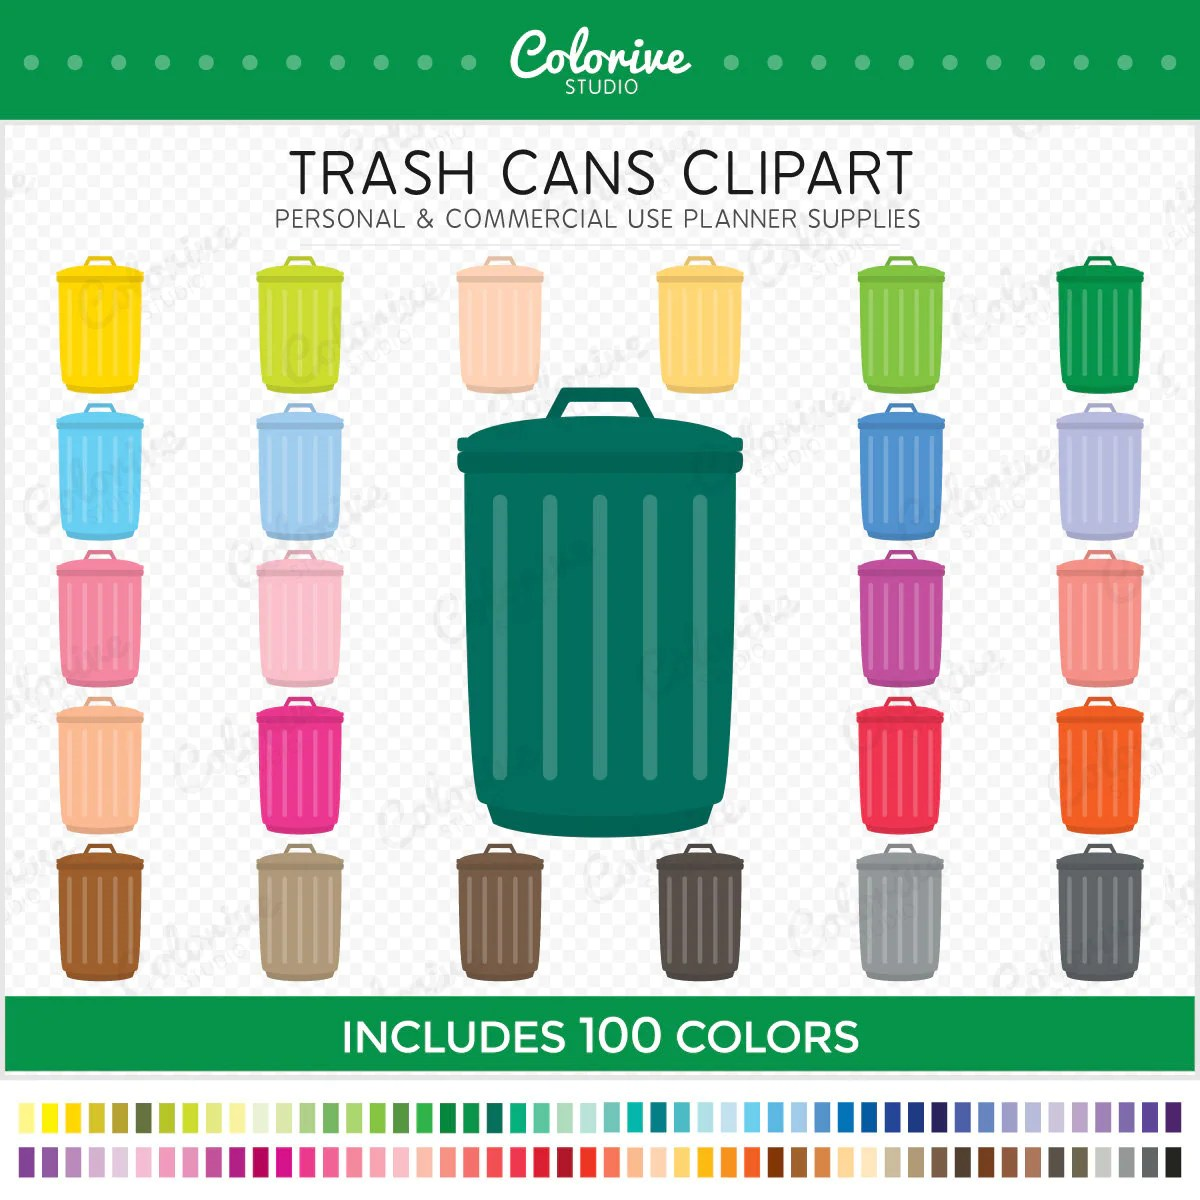 Colorful Garbage Cans Trash Can Clipart 100 Rainbow Colors Garbage Cans Container Recycling Png Illustration Planner Stickers Commercial Use